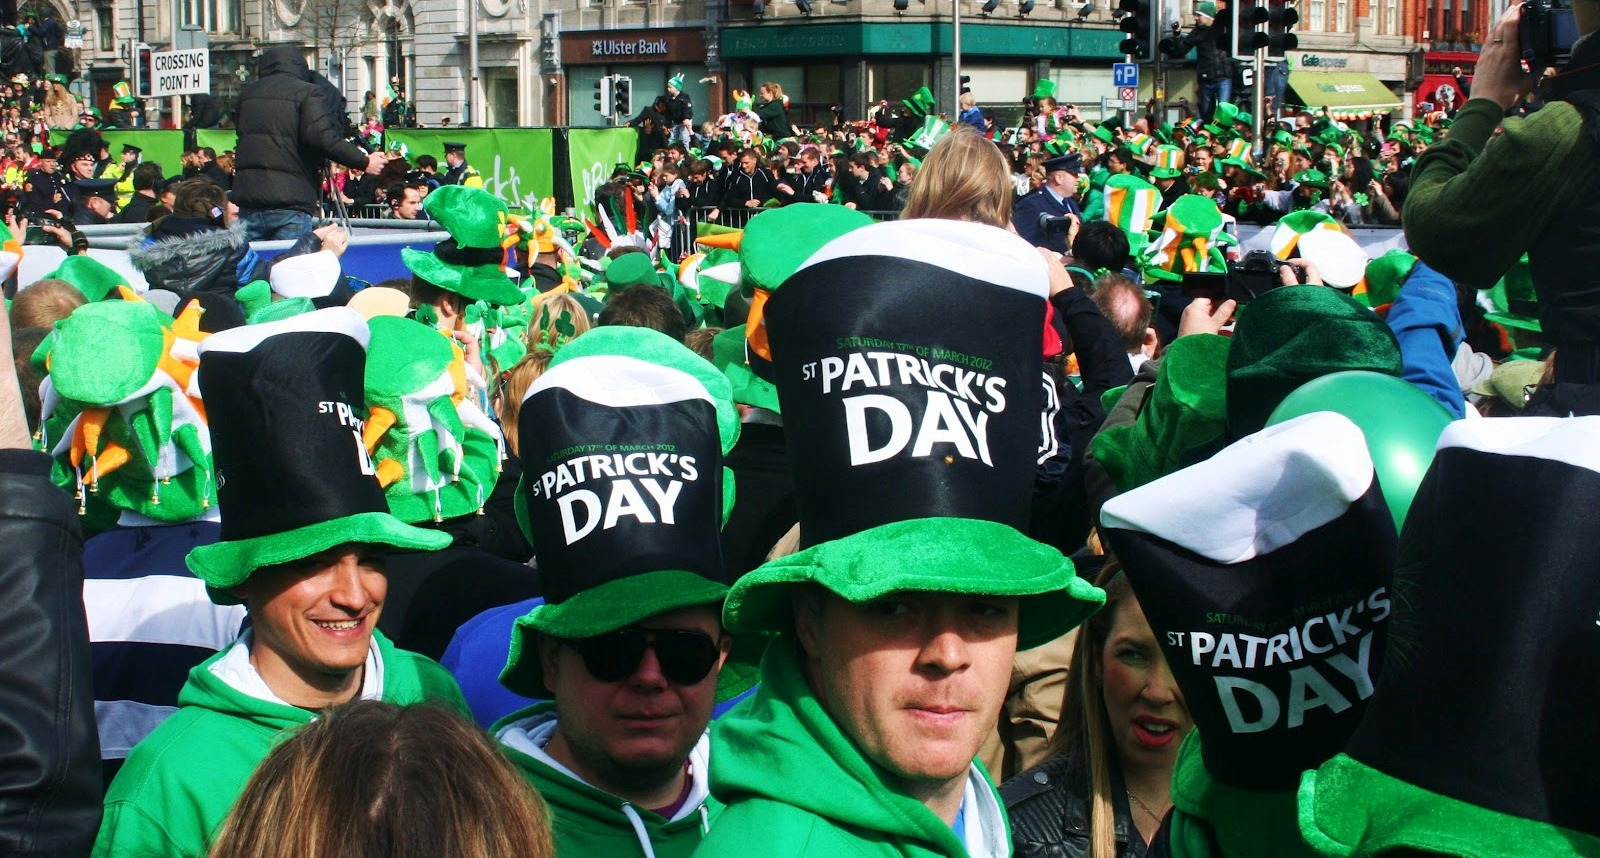 St. Patrick's Day 2015 Parade & Festival in San Diego